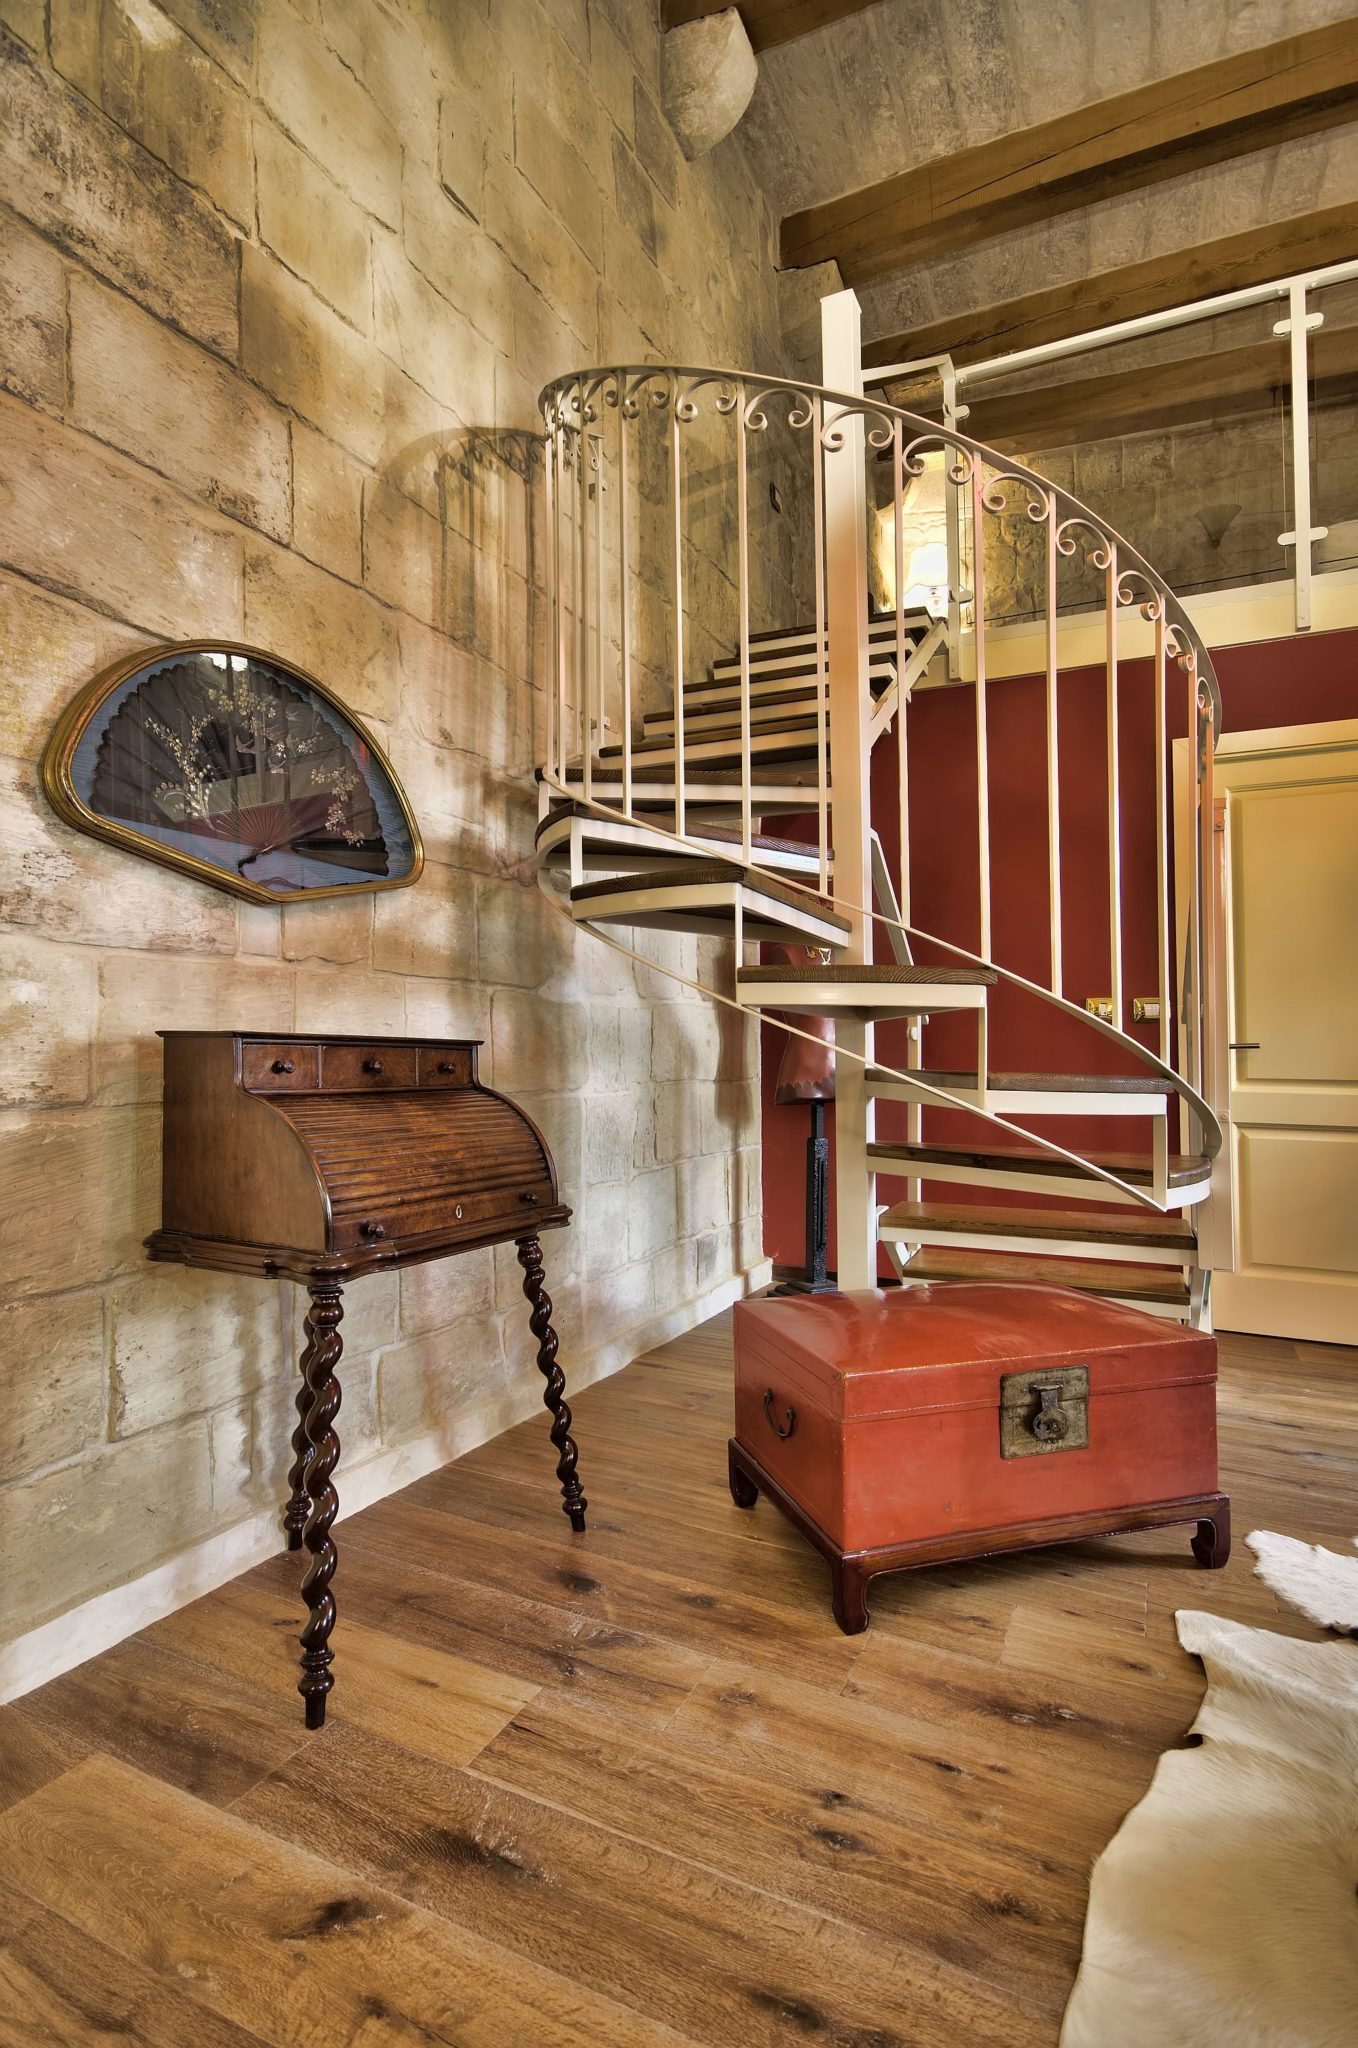 Spiral staircase leading to the aclove bedroom inside the first suite at Locanda La Gelsomina